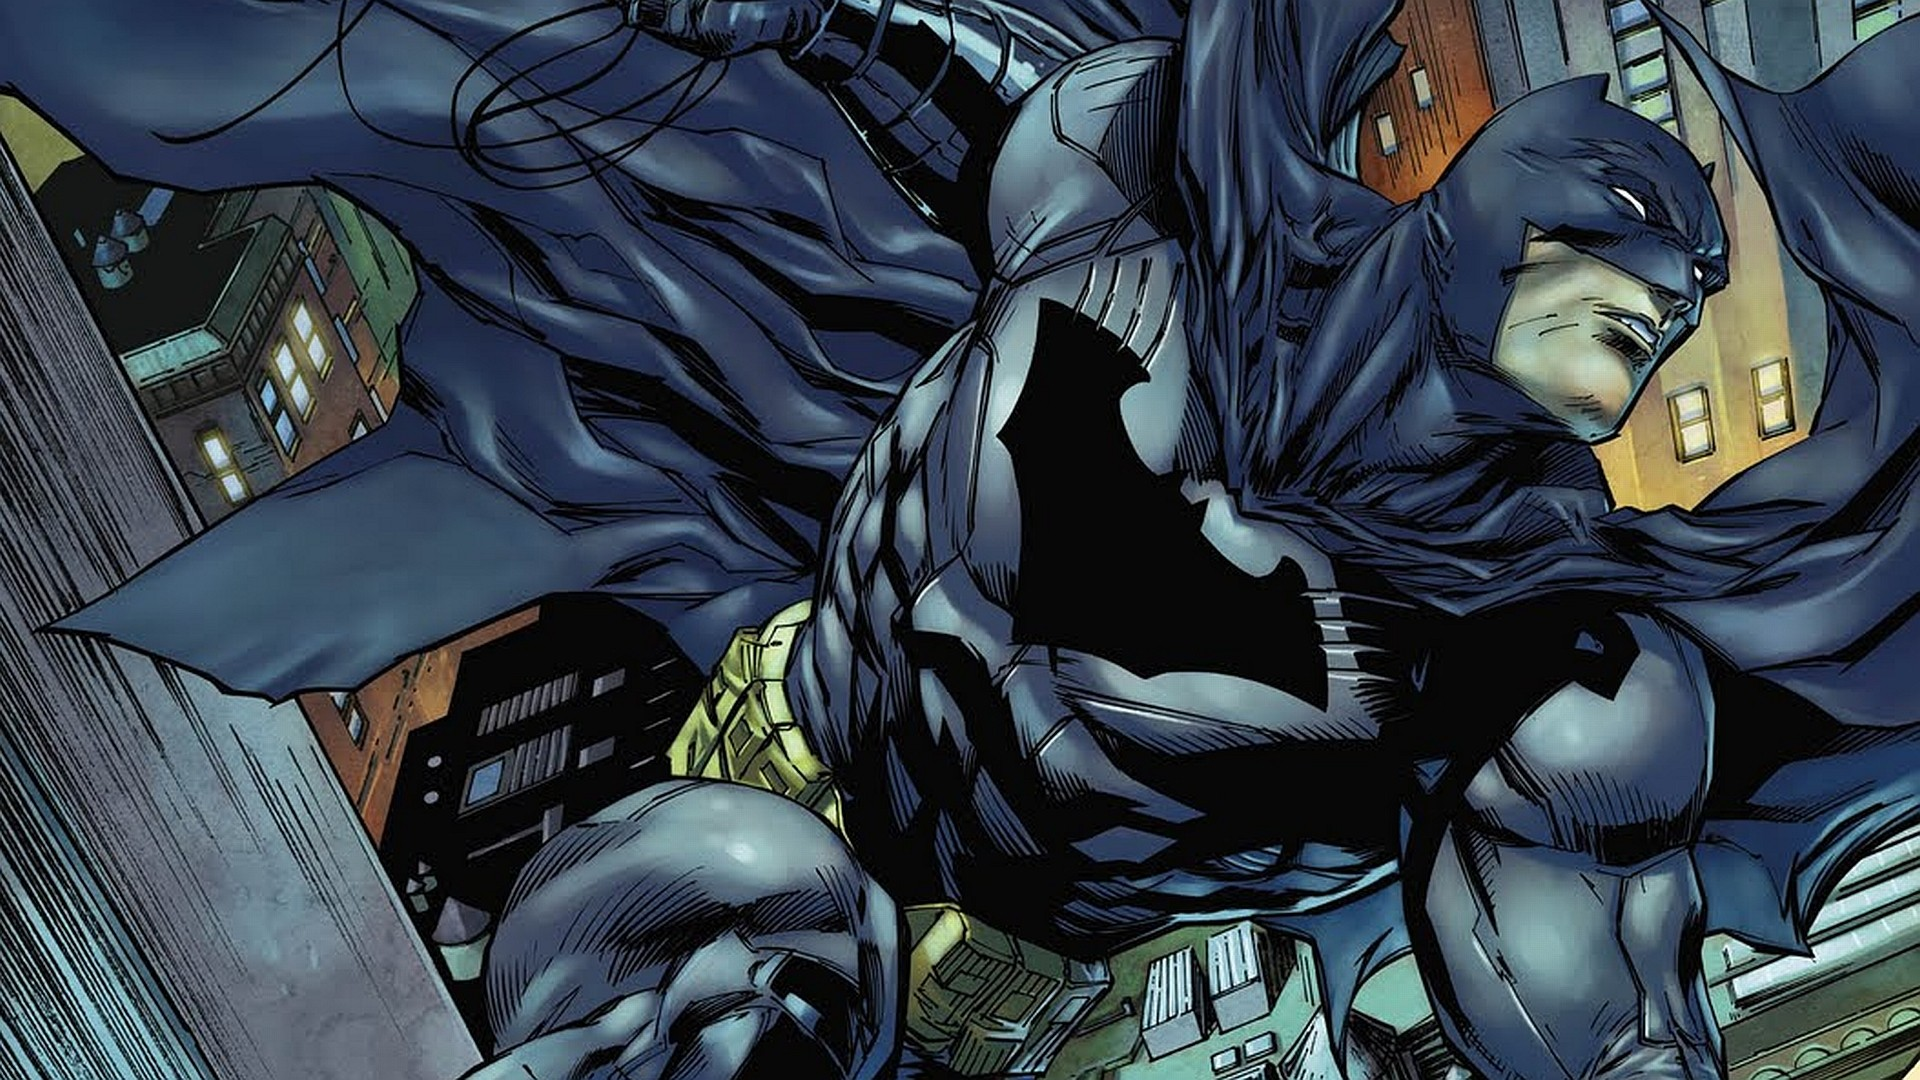 Splendid Batman or Dark Knight a DC Comic For Free Image Wallpaper